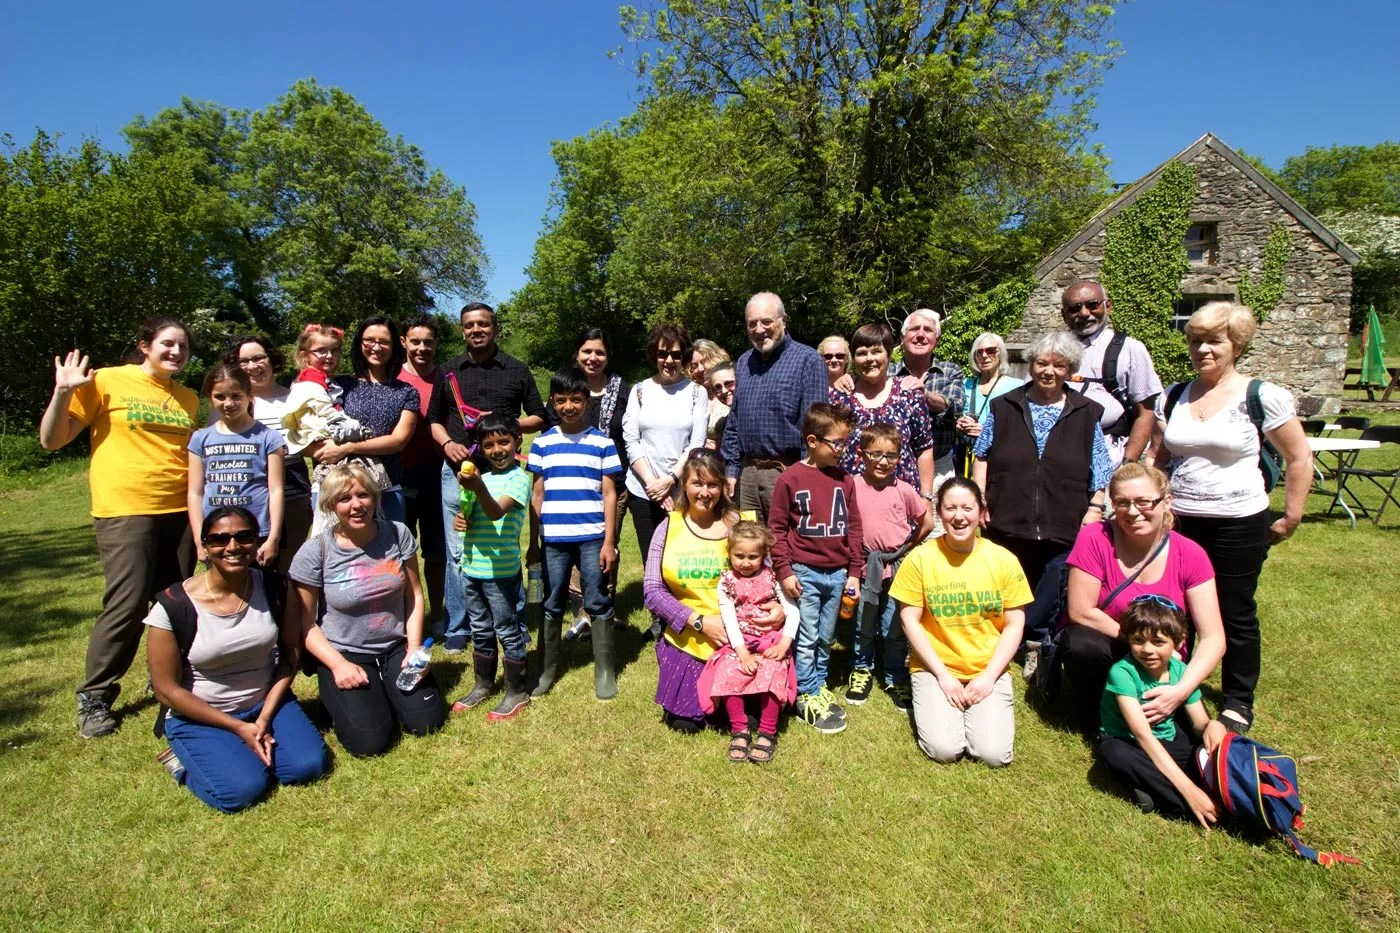 Group photo of sponsored walkers at Pentre Ifan gatehouse